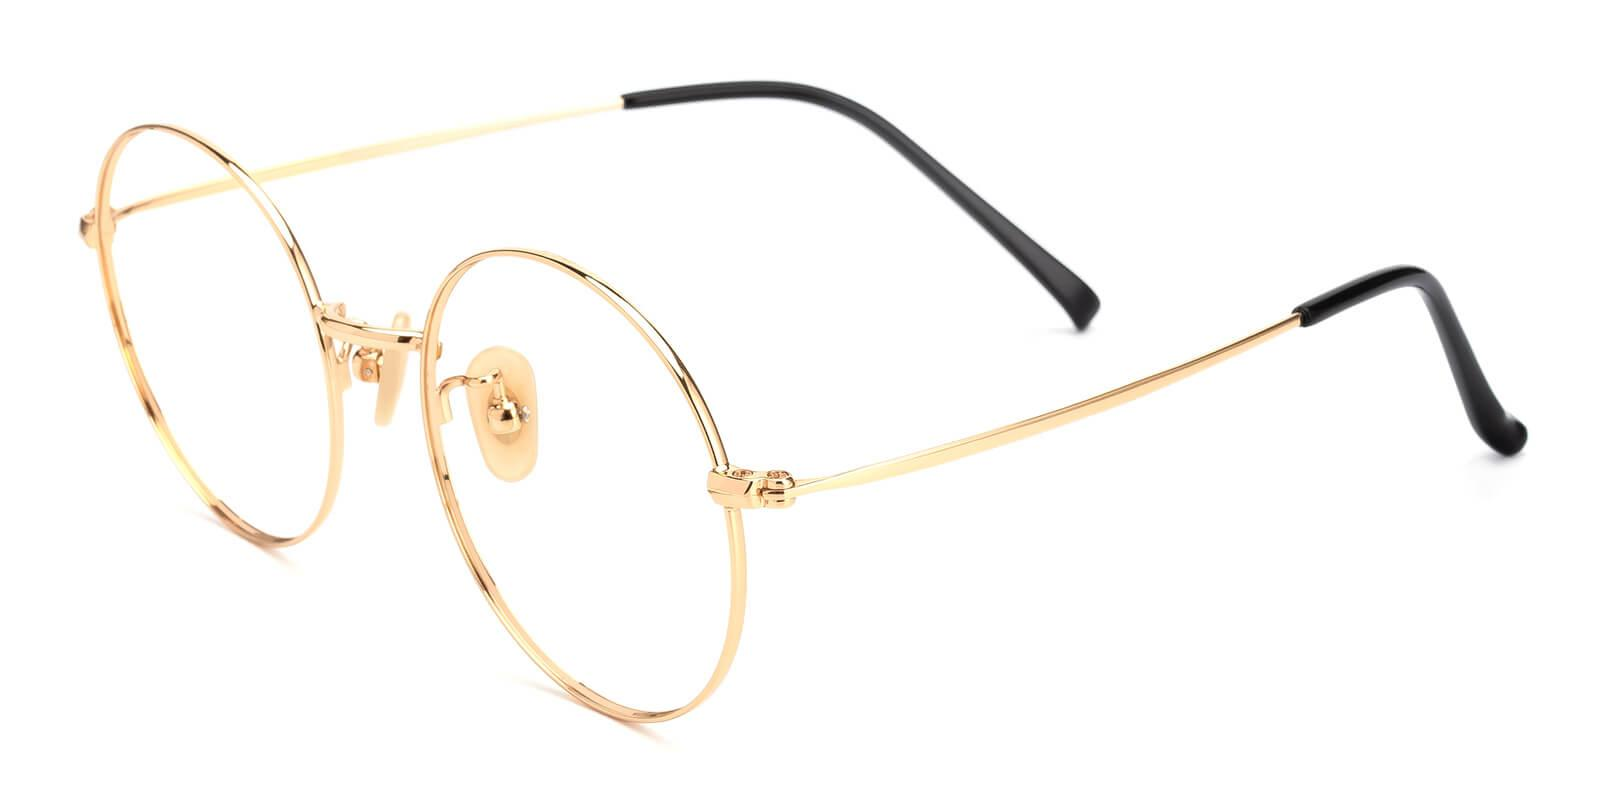 Theenity-Gold-Round-Titanium-Eyeglasses-additional1